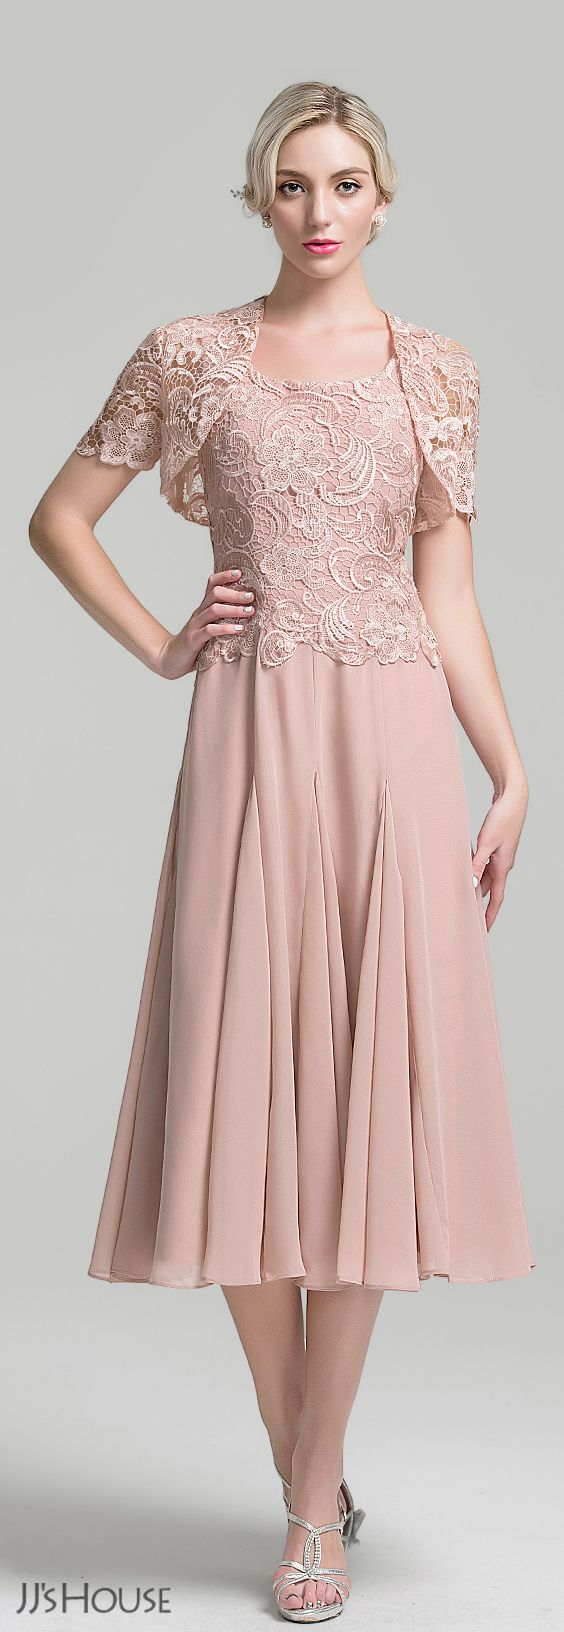 JJsHouse #Mother | vestido | Pinterest | Vestiditos, Vestidos para ...